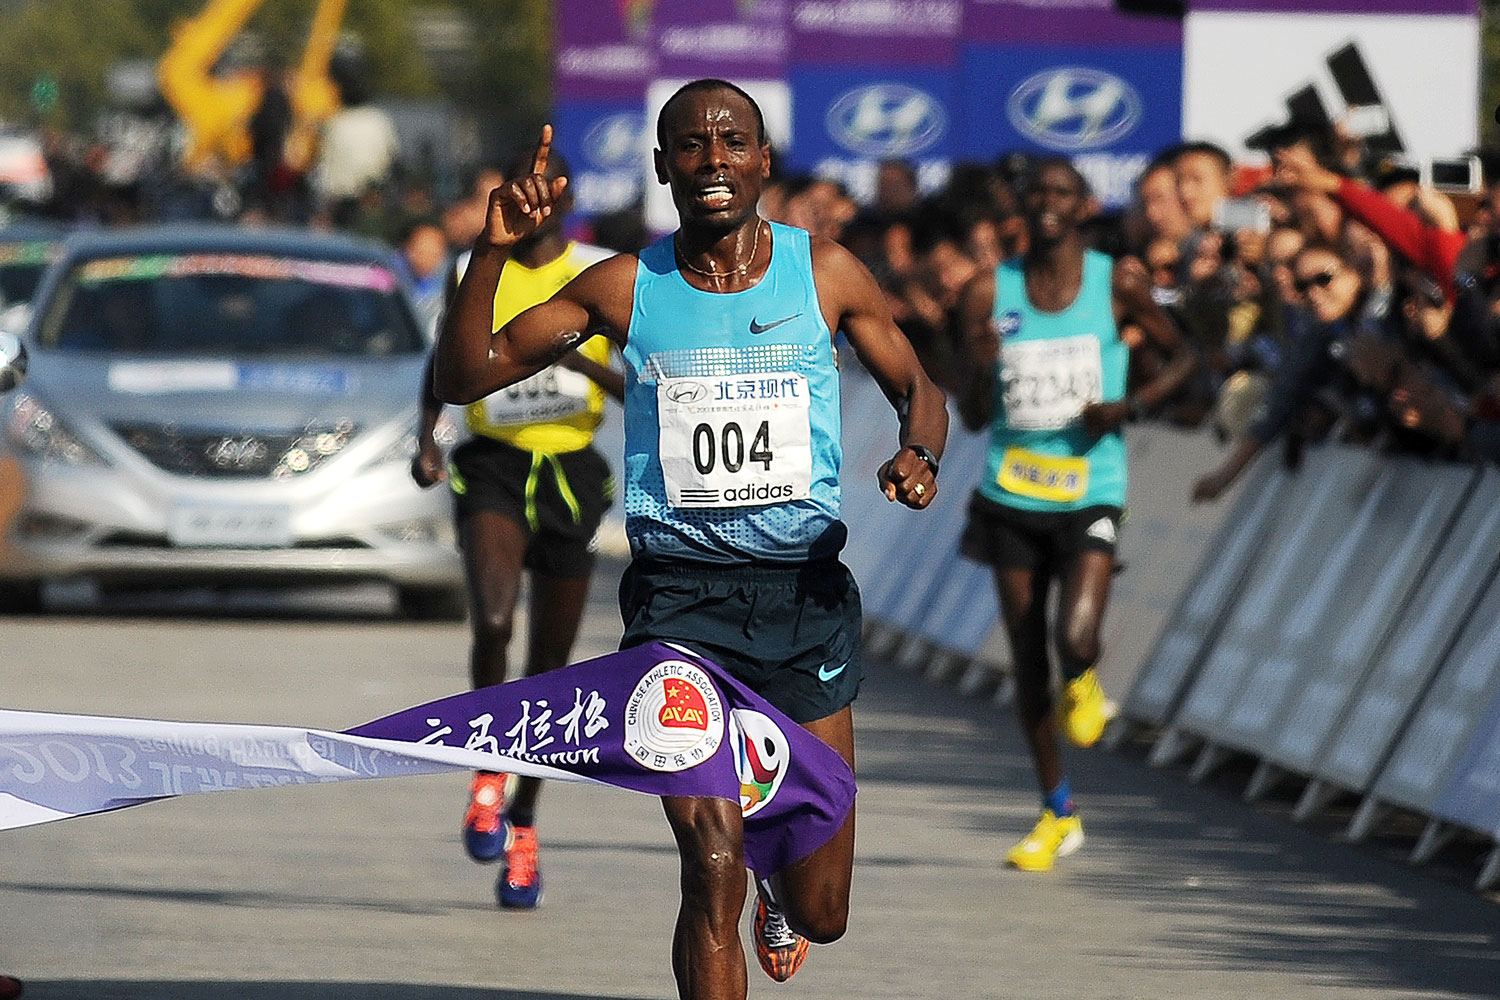 Ethiopia's Tadese Tola Woldegeberel (C) crosses the finish line to win the Beijing Marathon in October 2013.